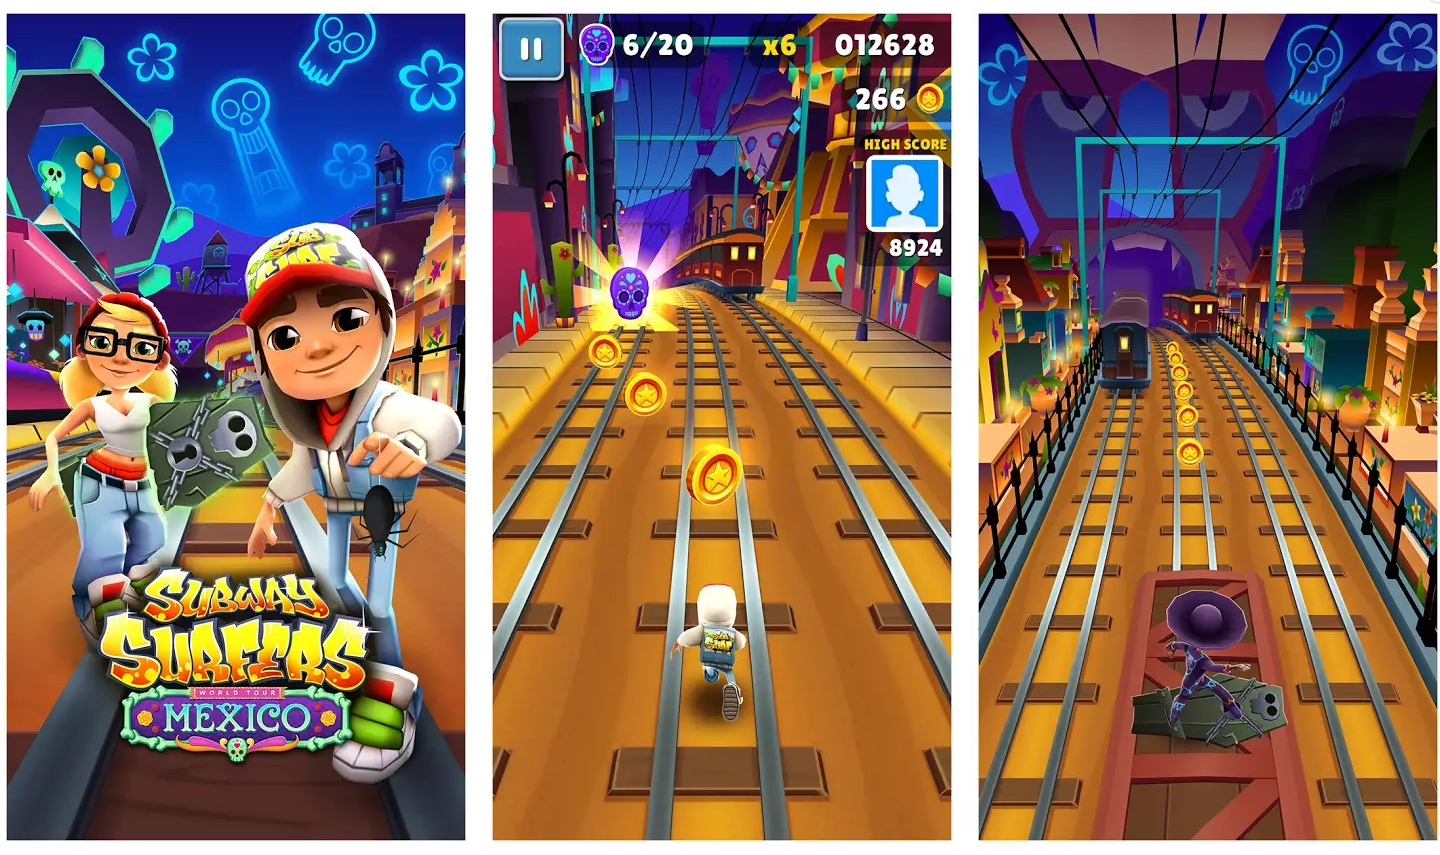 Subway-Surfers-Mexico-v1.78.0-Mod-Apk